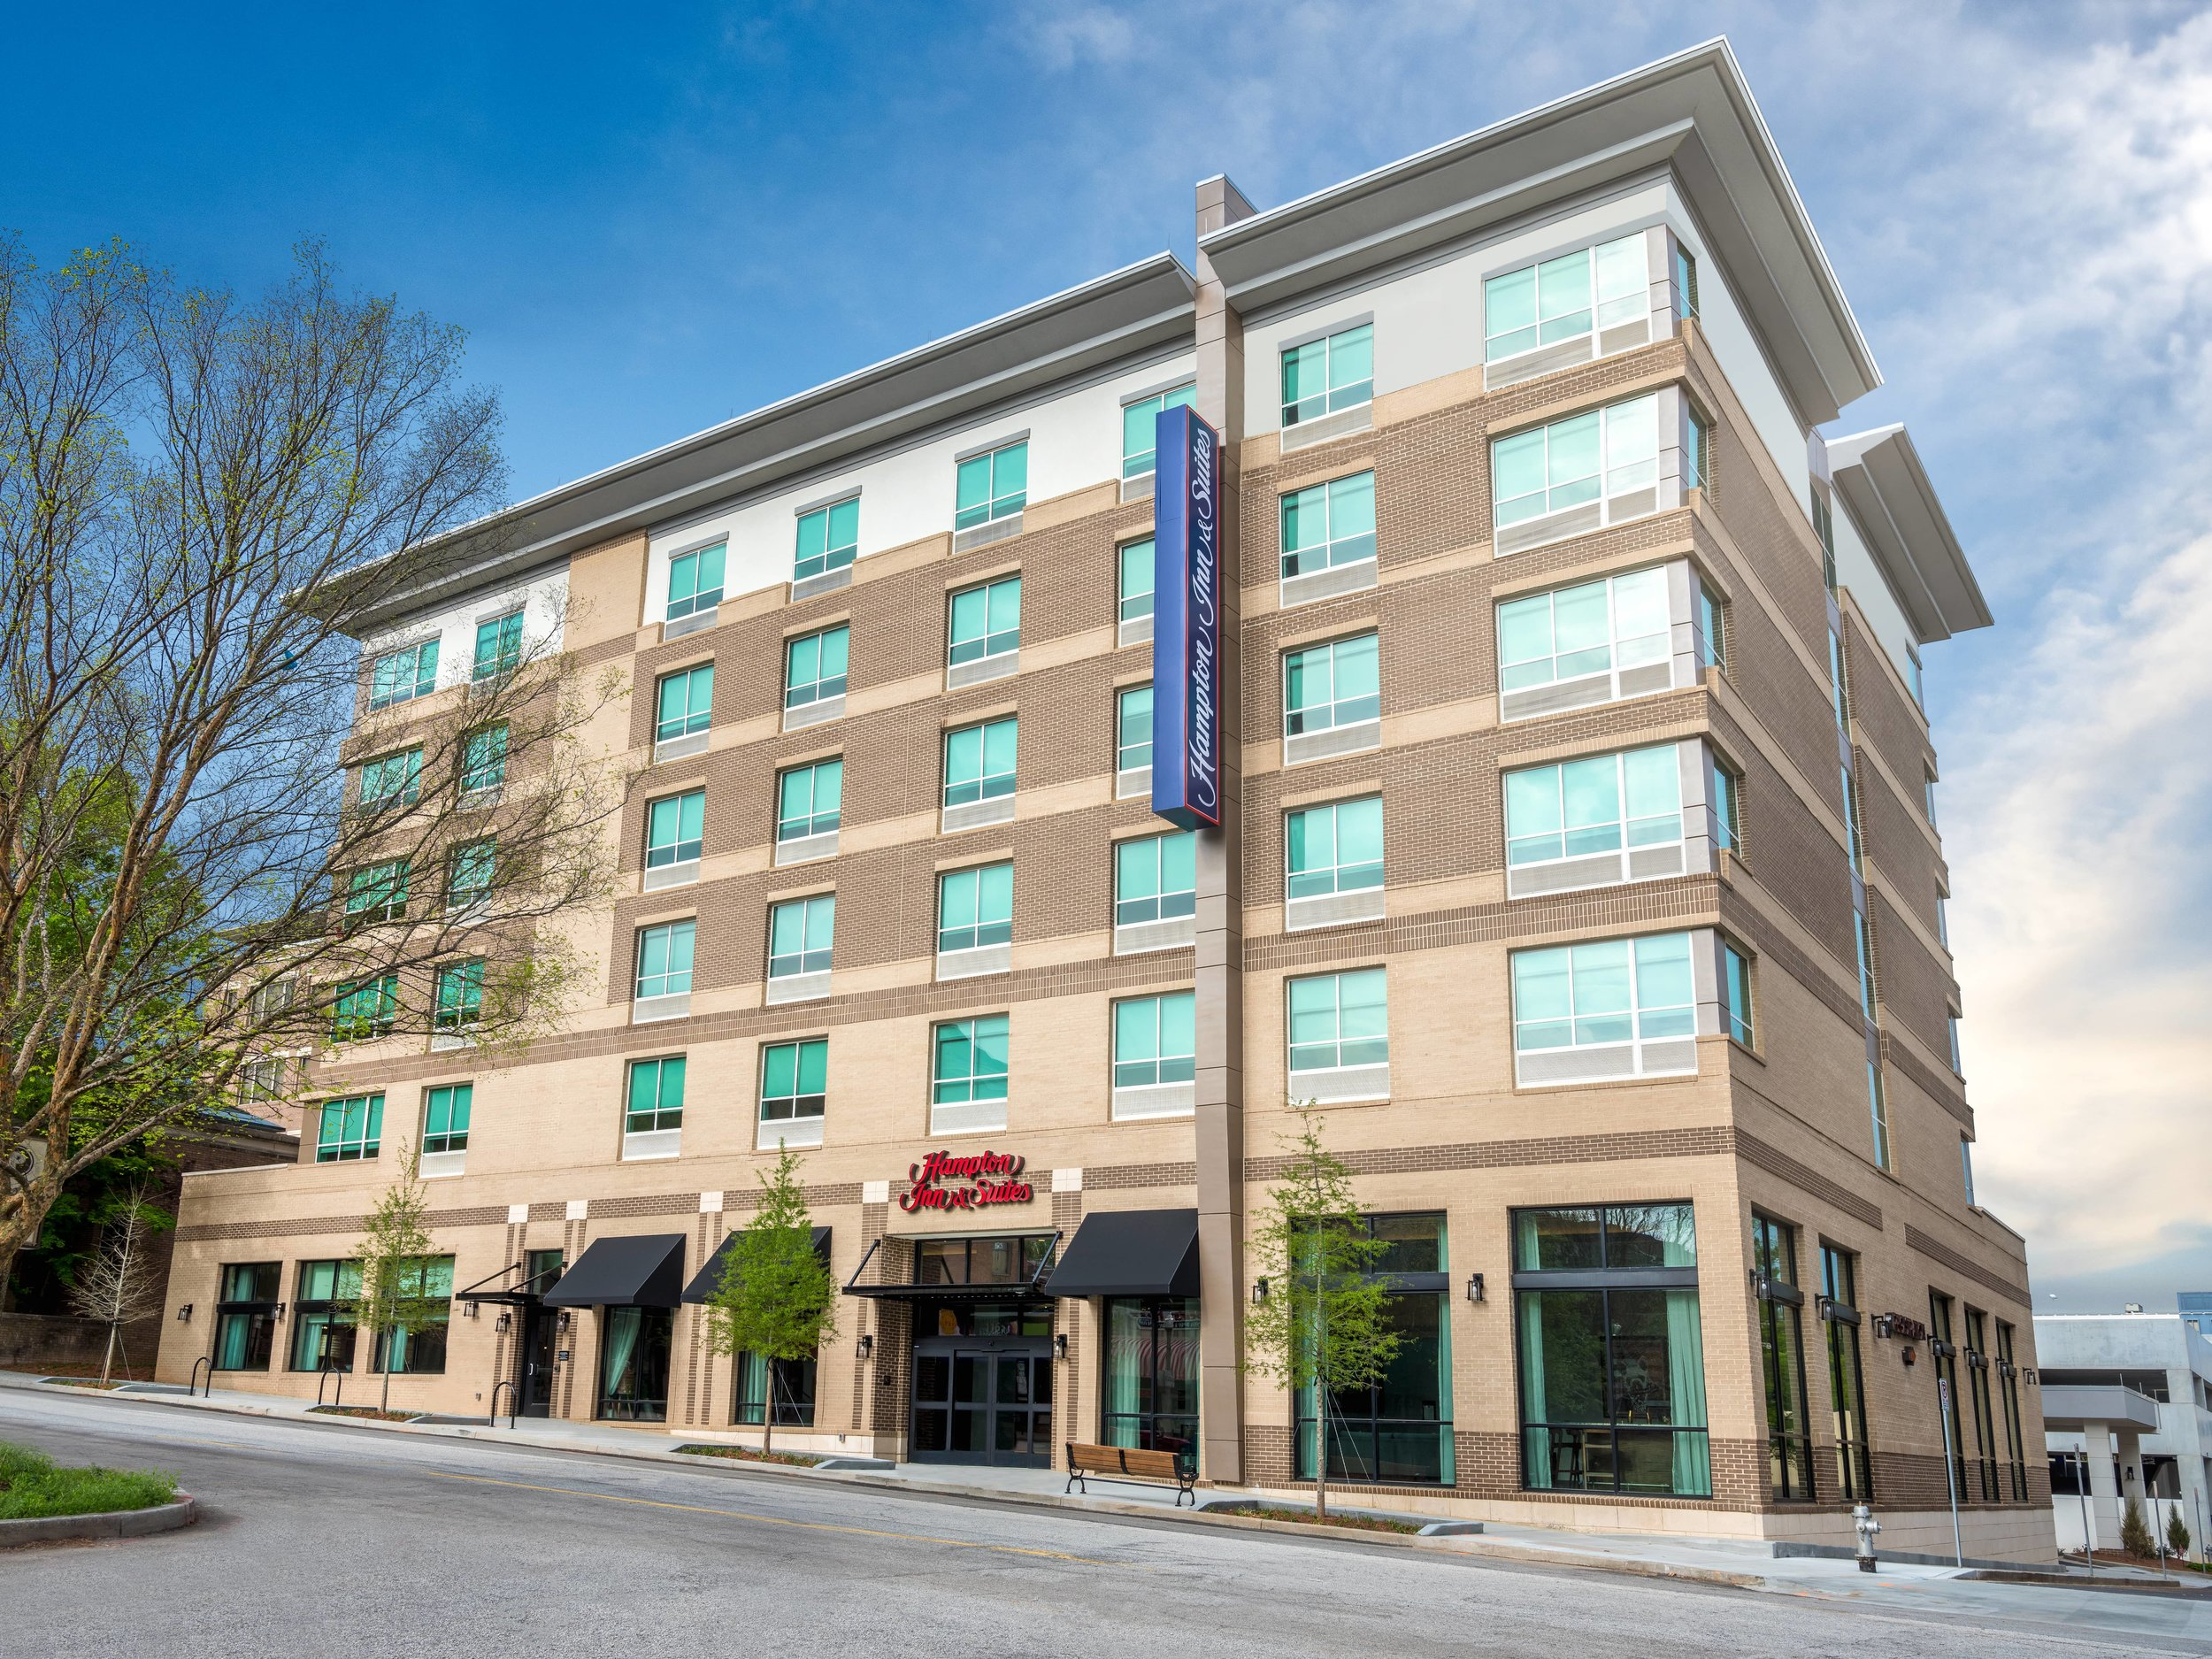 Hampton_Inn_Decatur_01-min.jpg